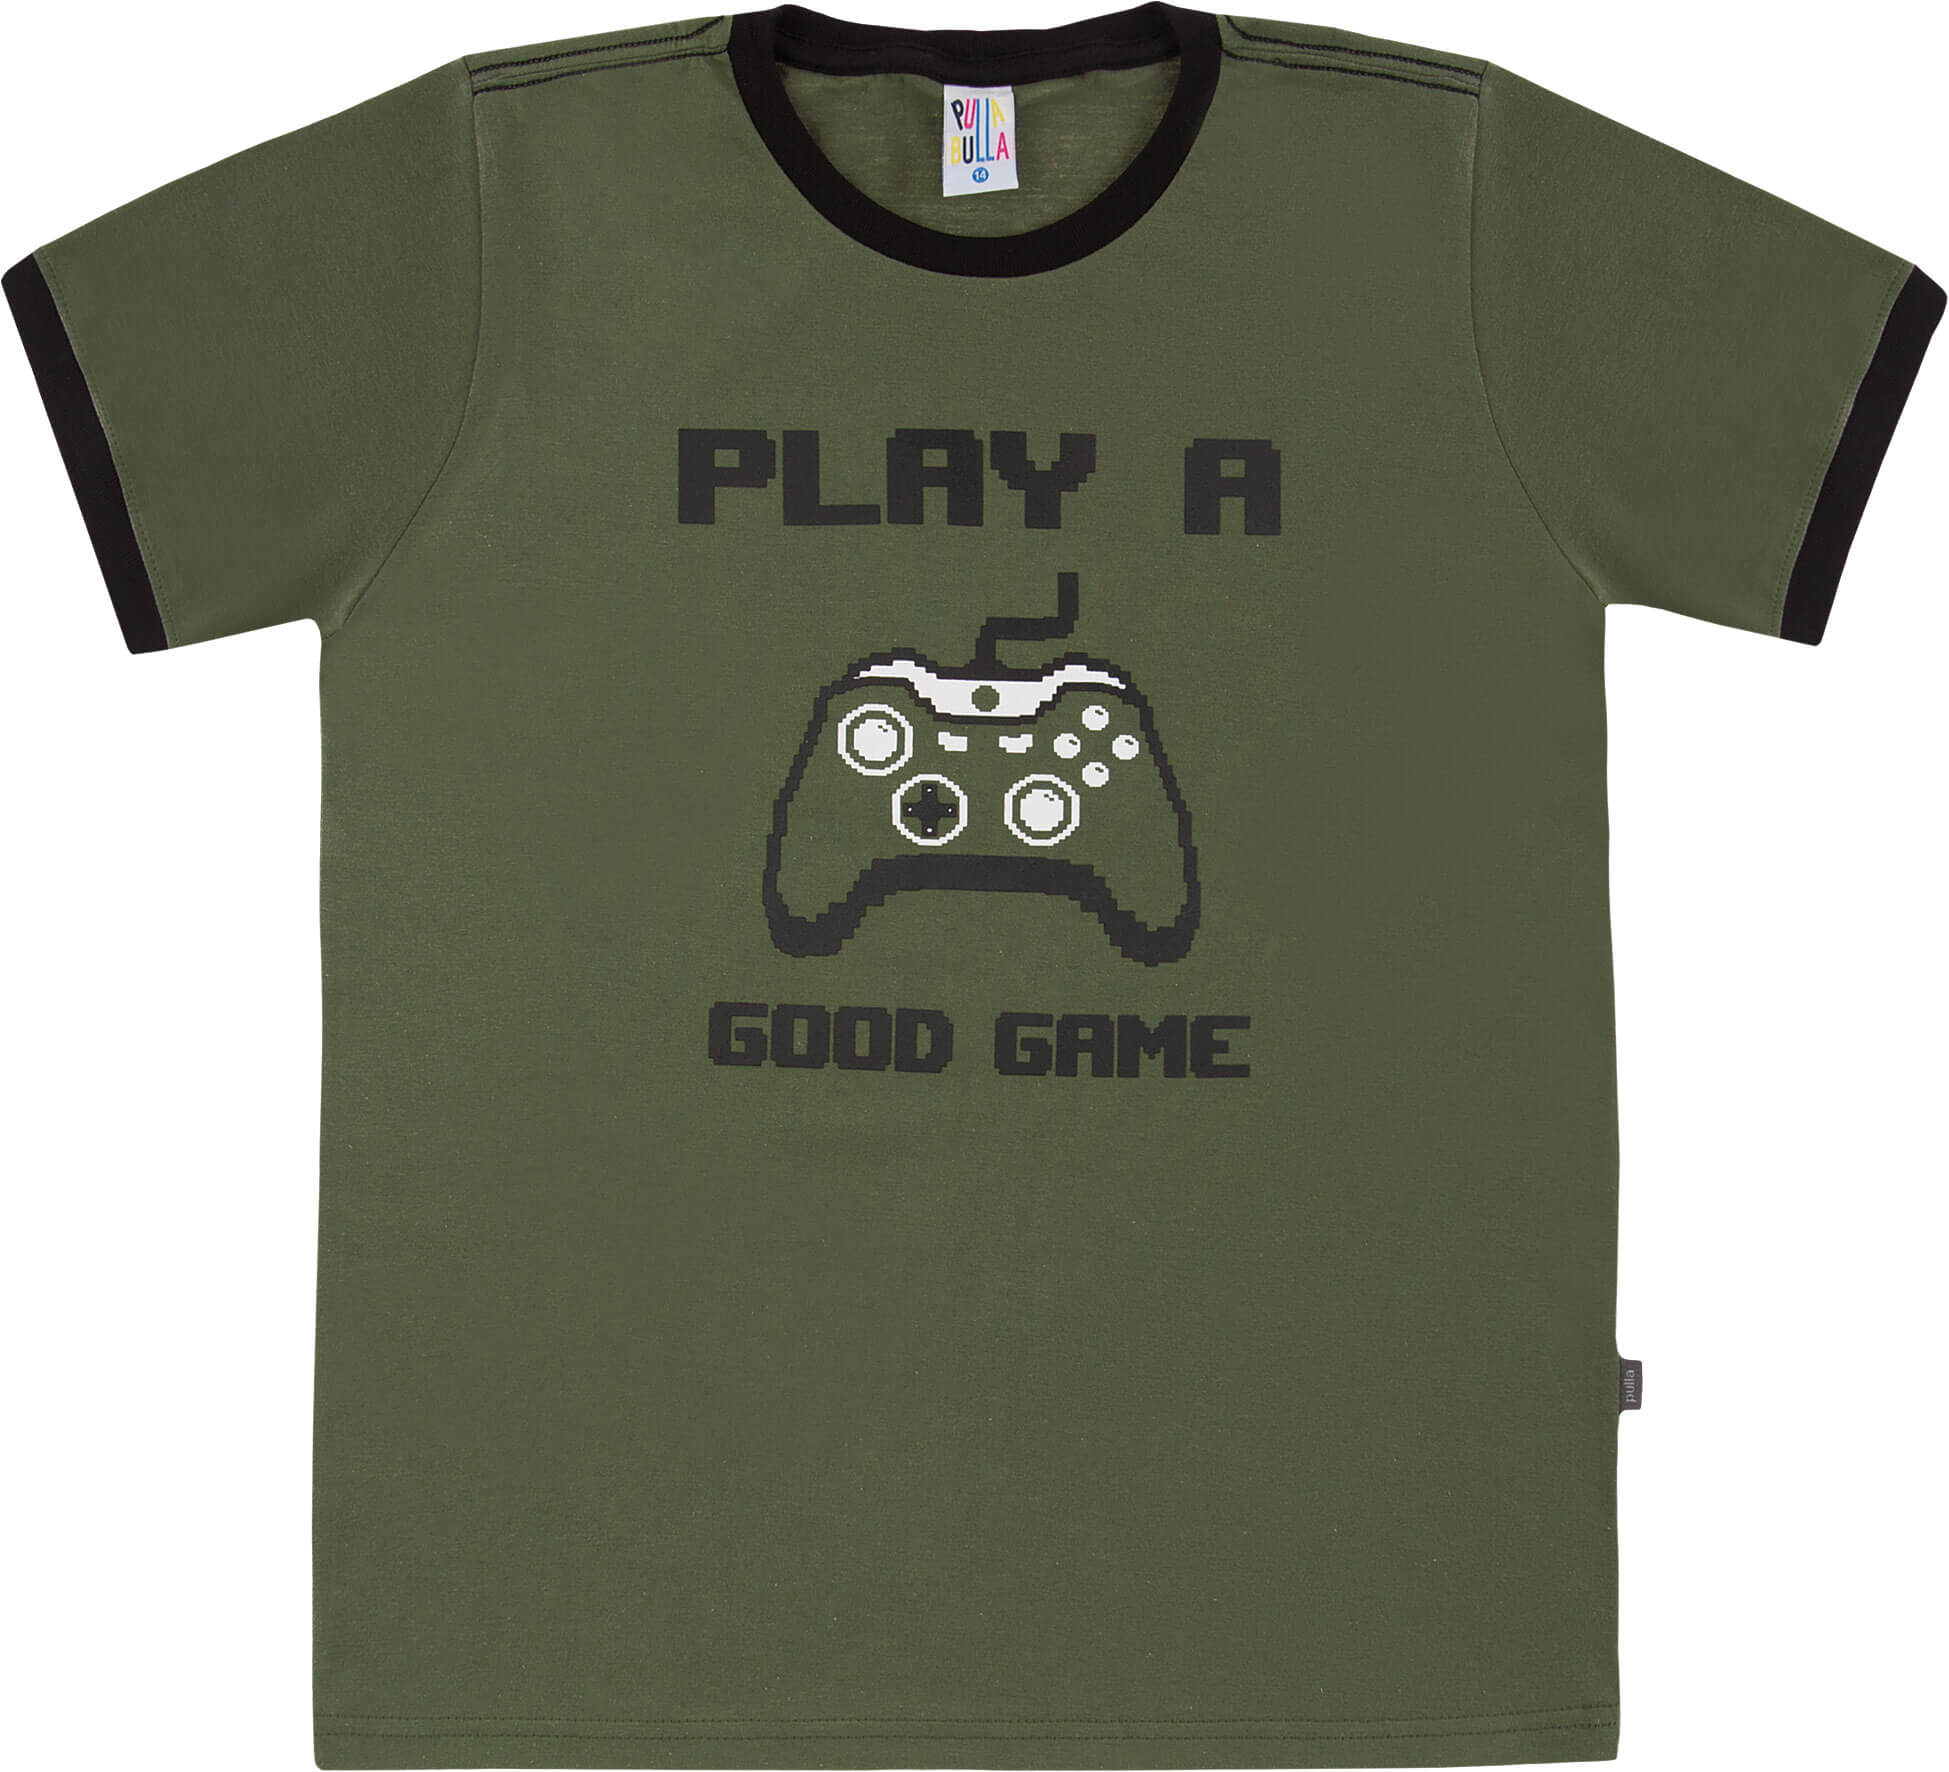 Camiseta  Pulla Bulla Good Games Militar